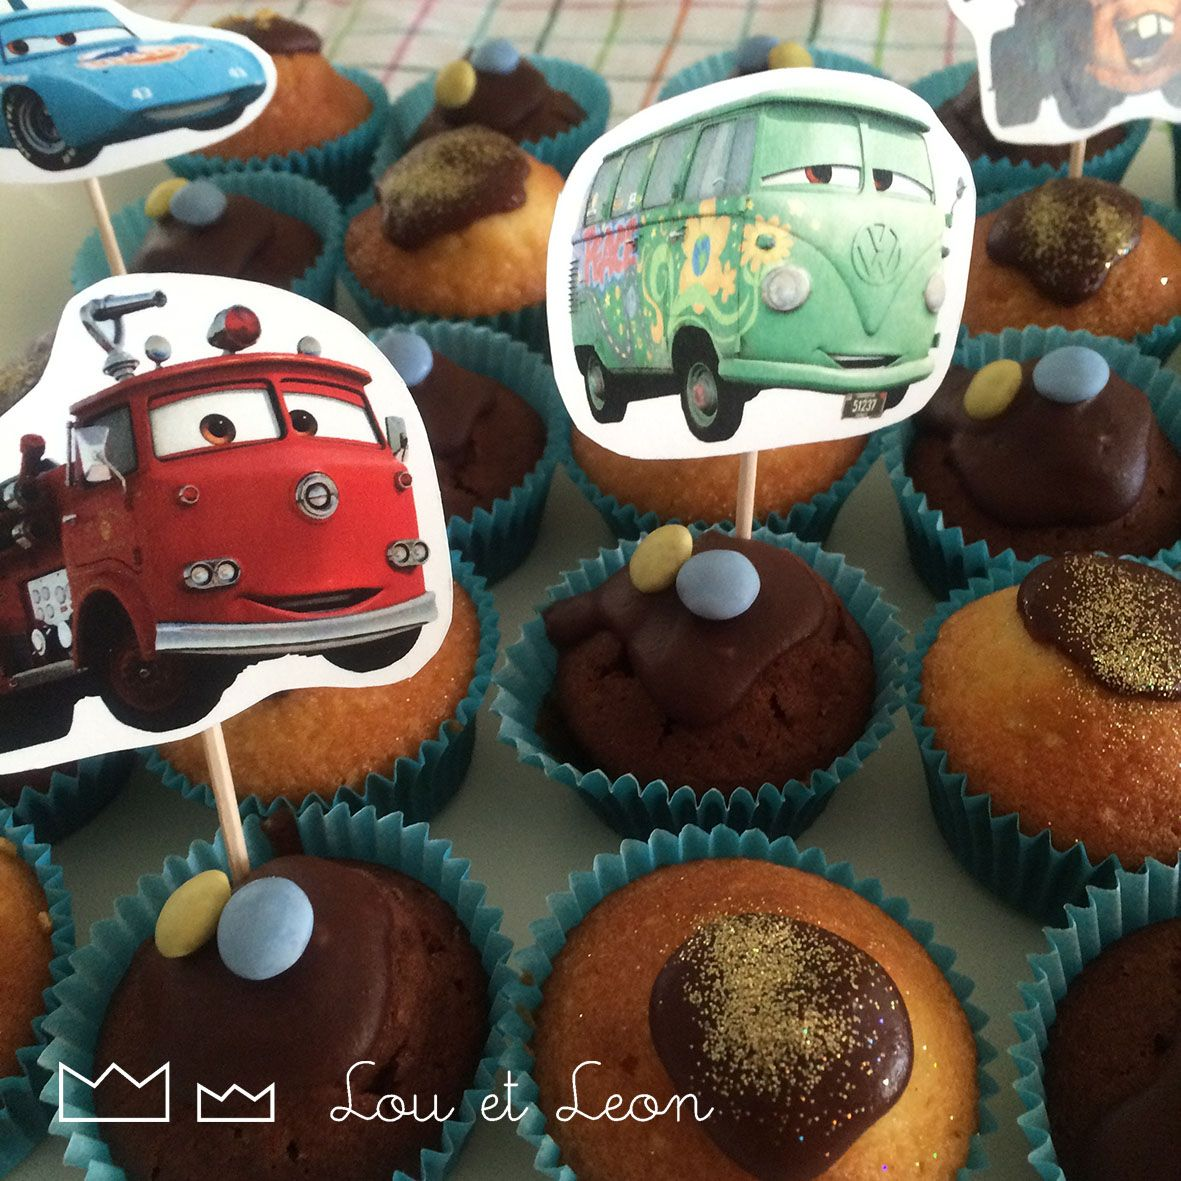 Free download cars cupcakes sticks! Cars, lighting McQueen, birthday party,  cupcakes! 0221cad7563